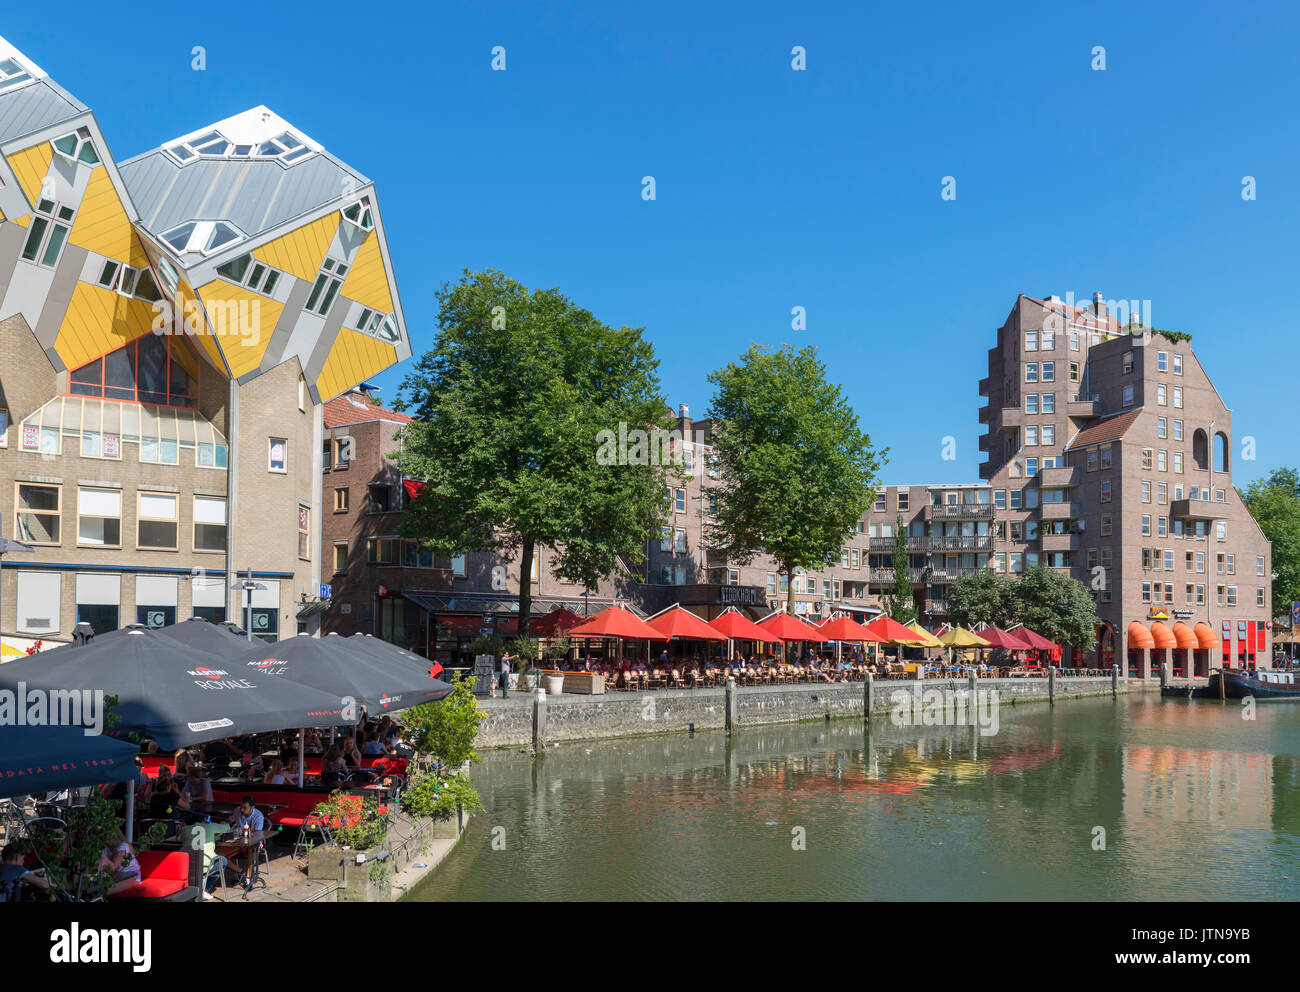 Waterfront restaurants in the Oude Haven (Old Harbour) with Cube Houses (Kubuswoningen) to the left, Rotterdam, Netherlands - Stock Image